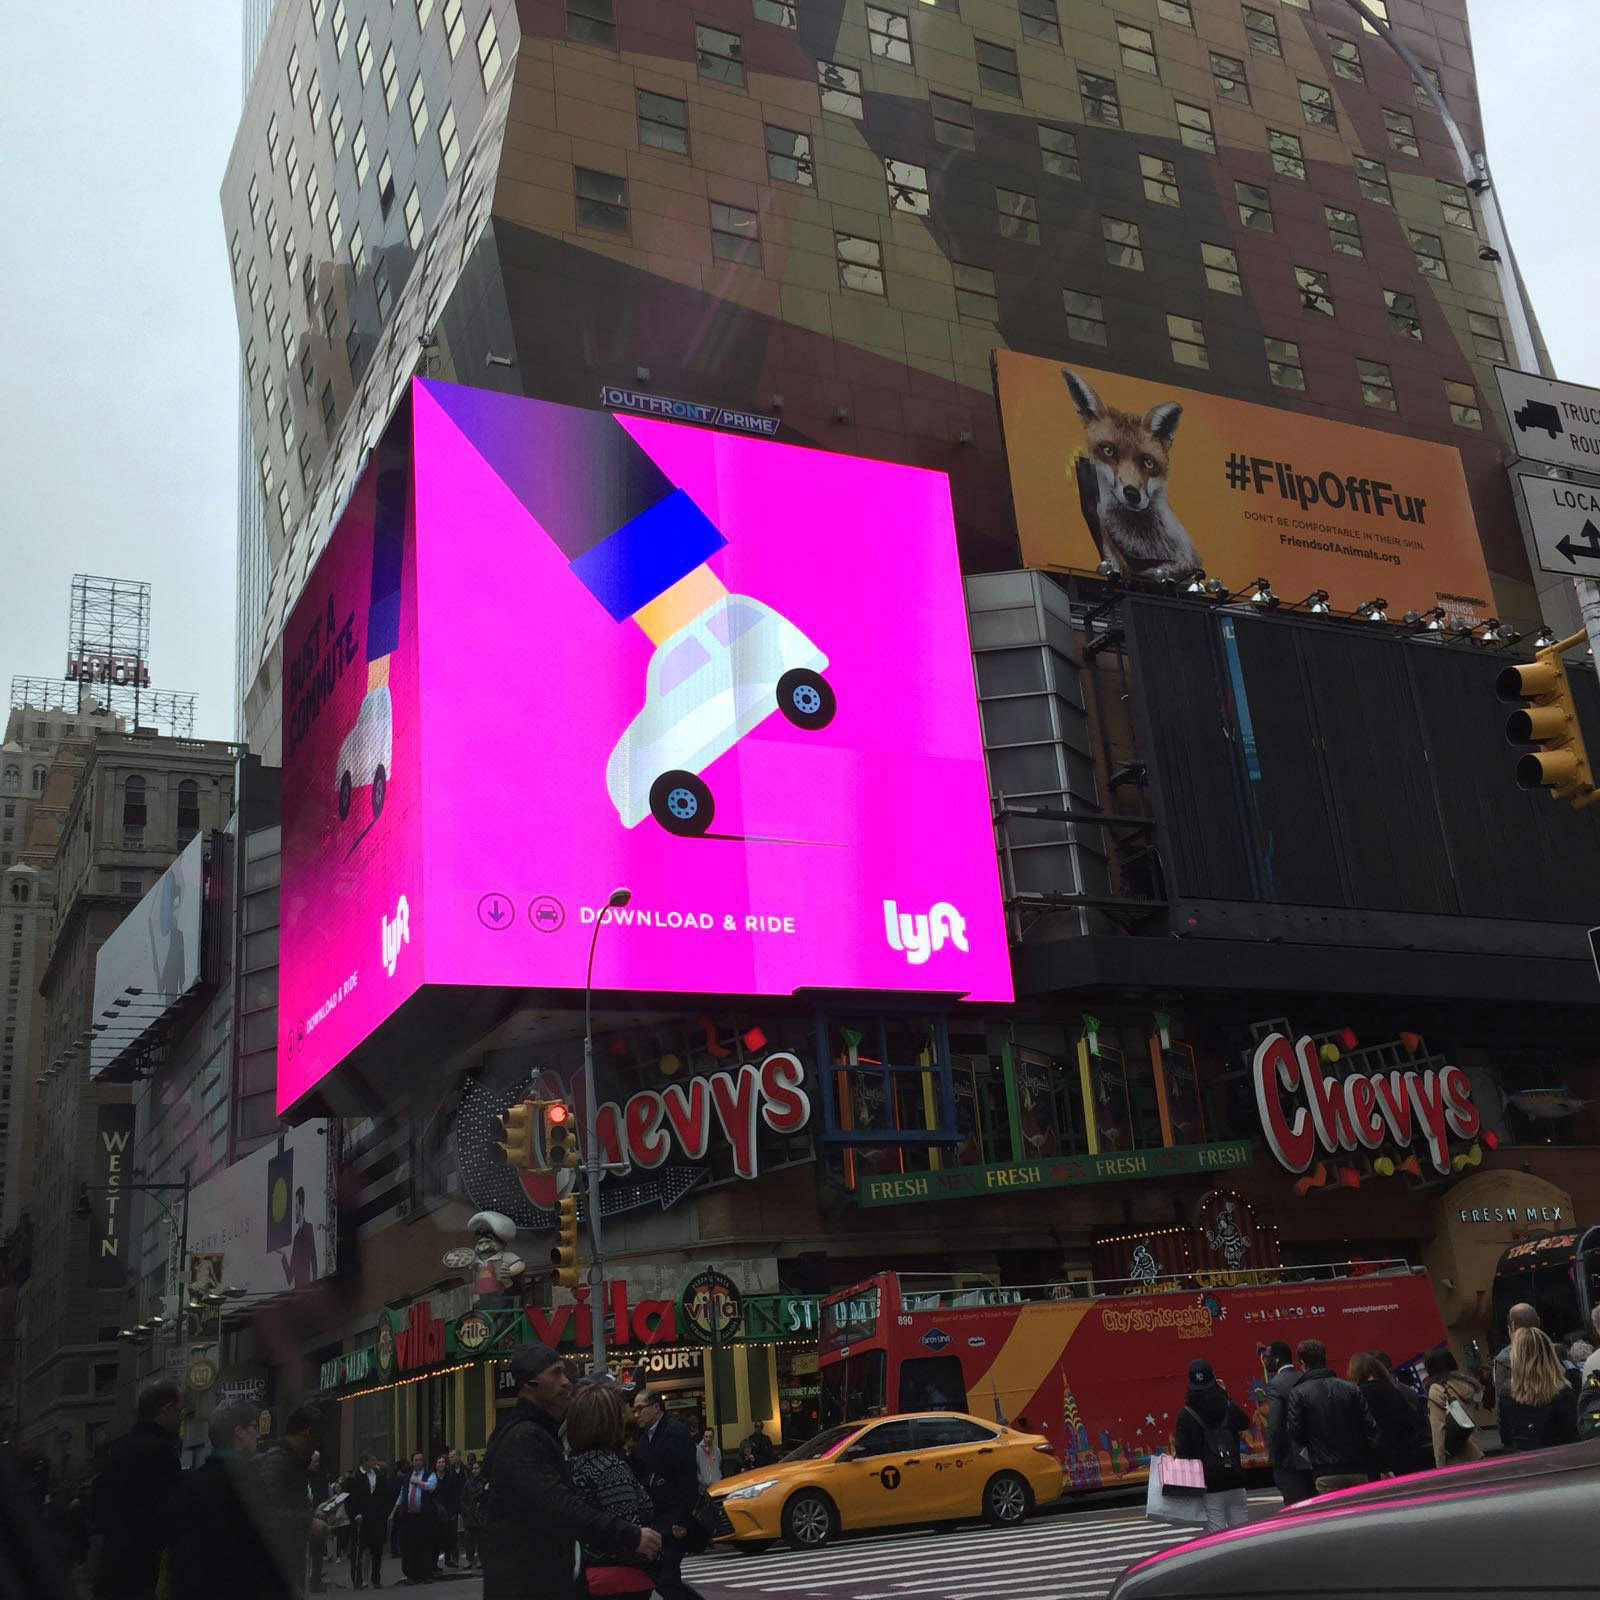 LYFT Advertising Campaign - illustrated by  Noma Bar.  42nd Street, New York, NY